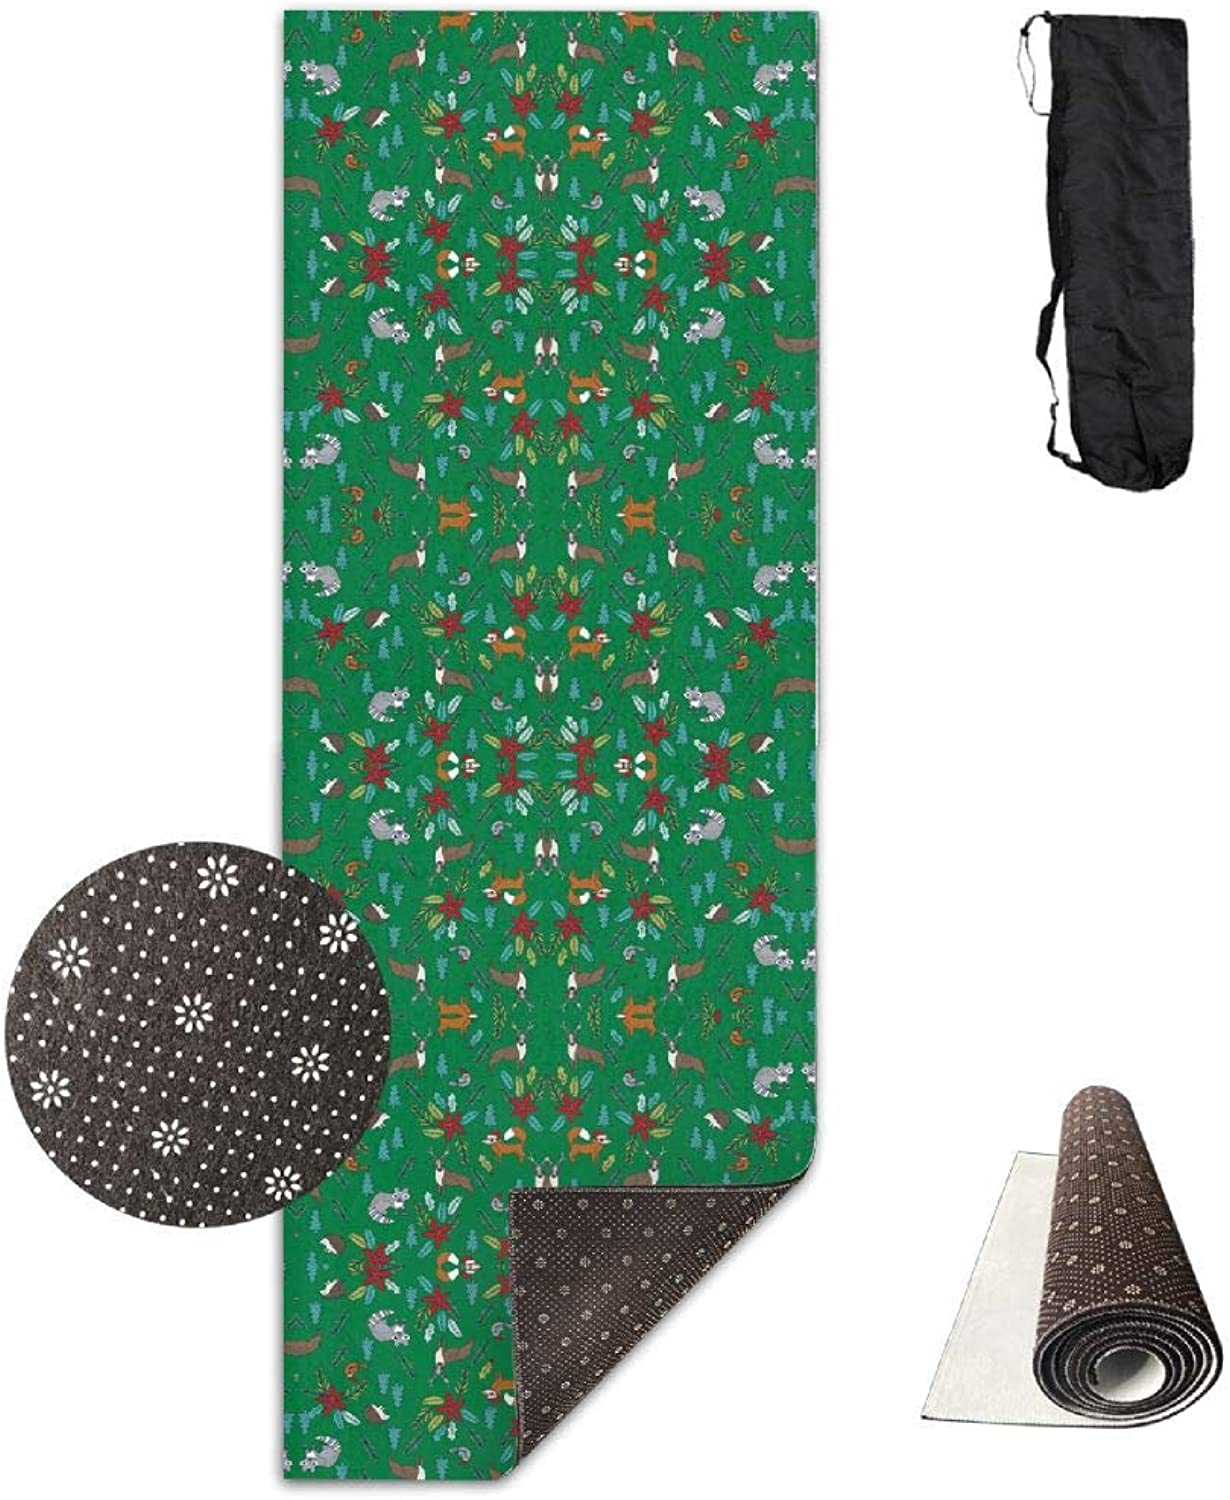 70Inch Long 28Inch Wide Comfort Velvet Yoga Mat, Christmas Woodland Cute Xmas Christmas Fabri(3755) Mat Carrying Strap & Bag